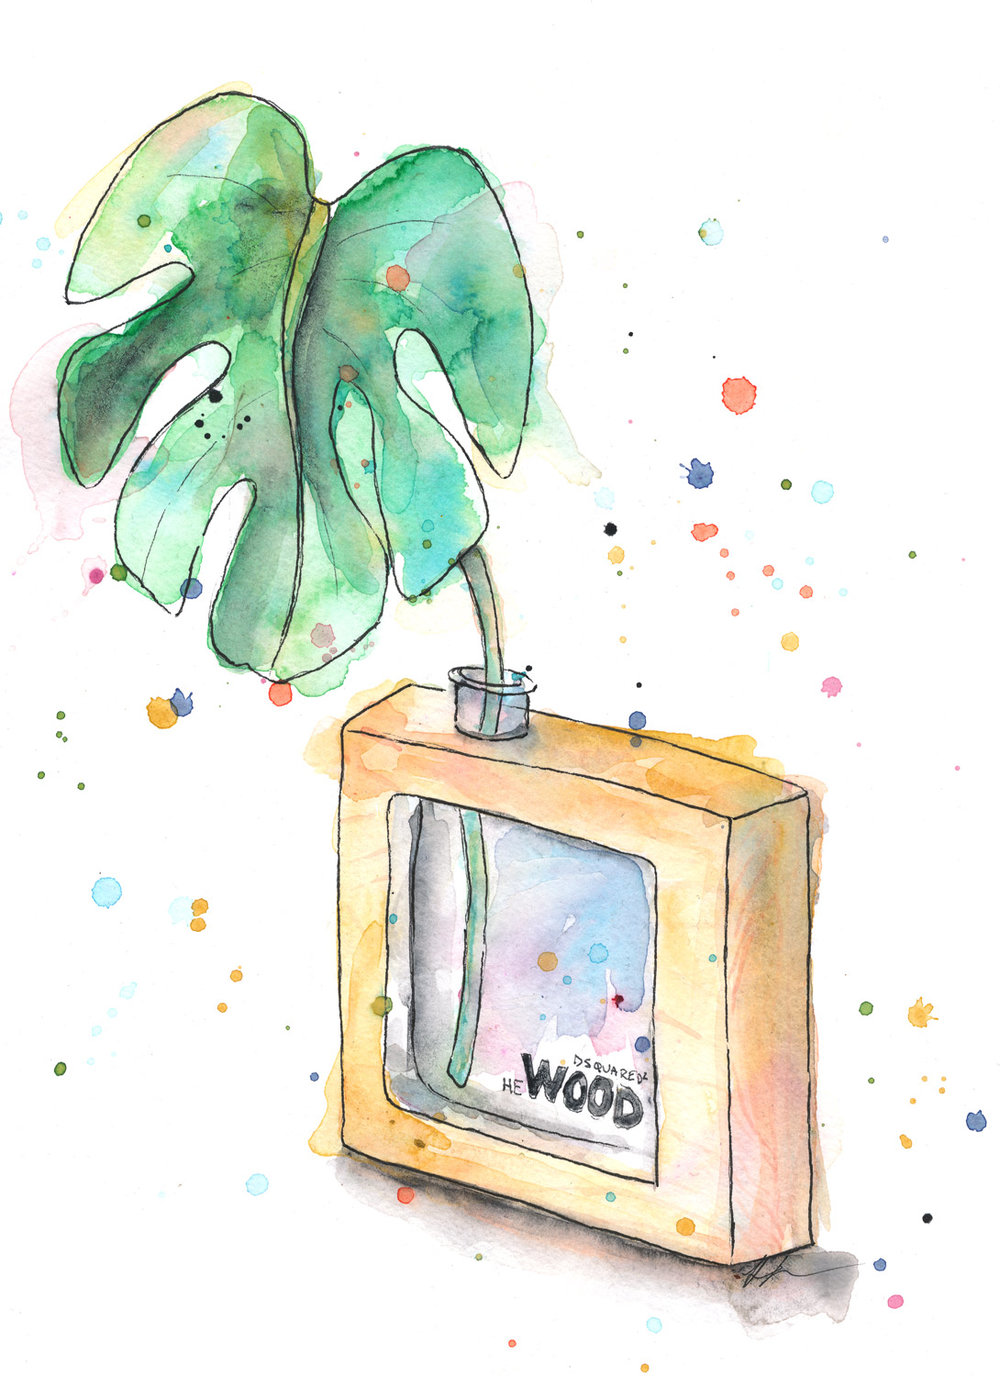 Benjamin-Edward-Dsquared-Dsquared2-Wood-Hewood-Cologne-Mostera-Deliciosa-watercolour-illustration.jpg